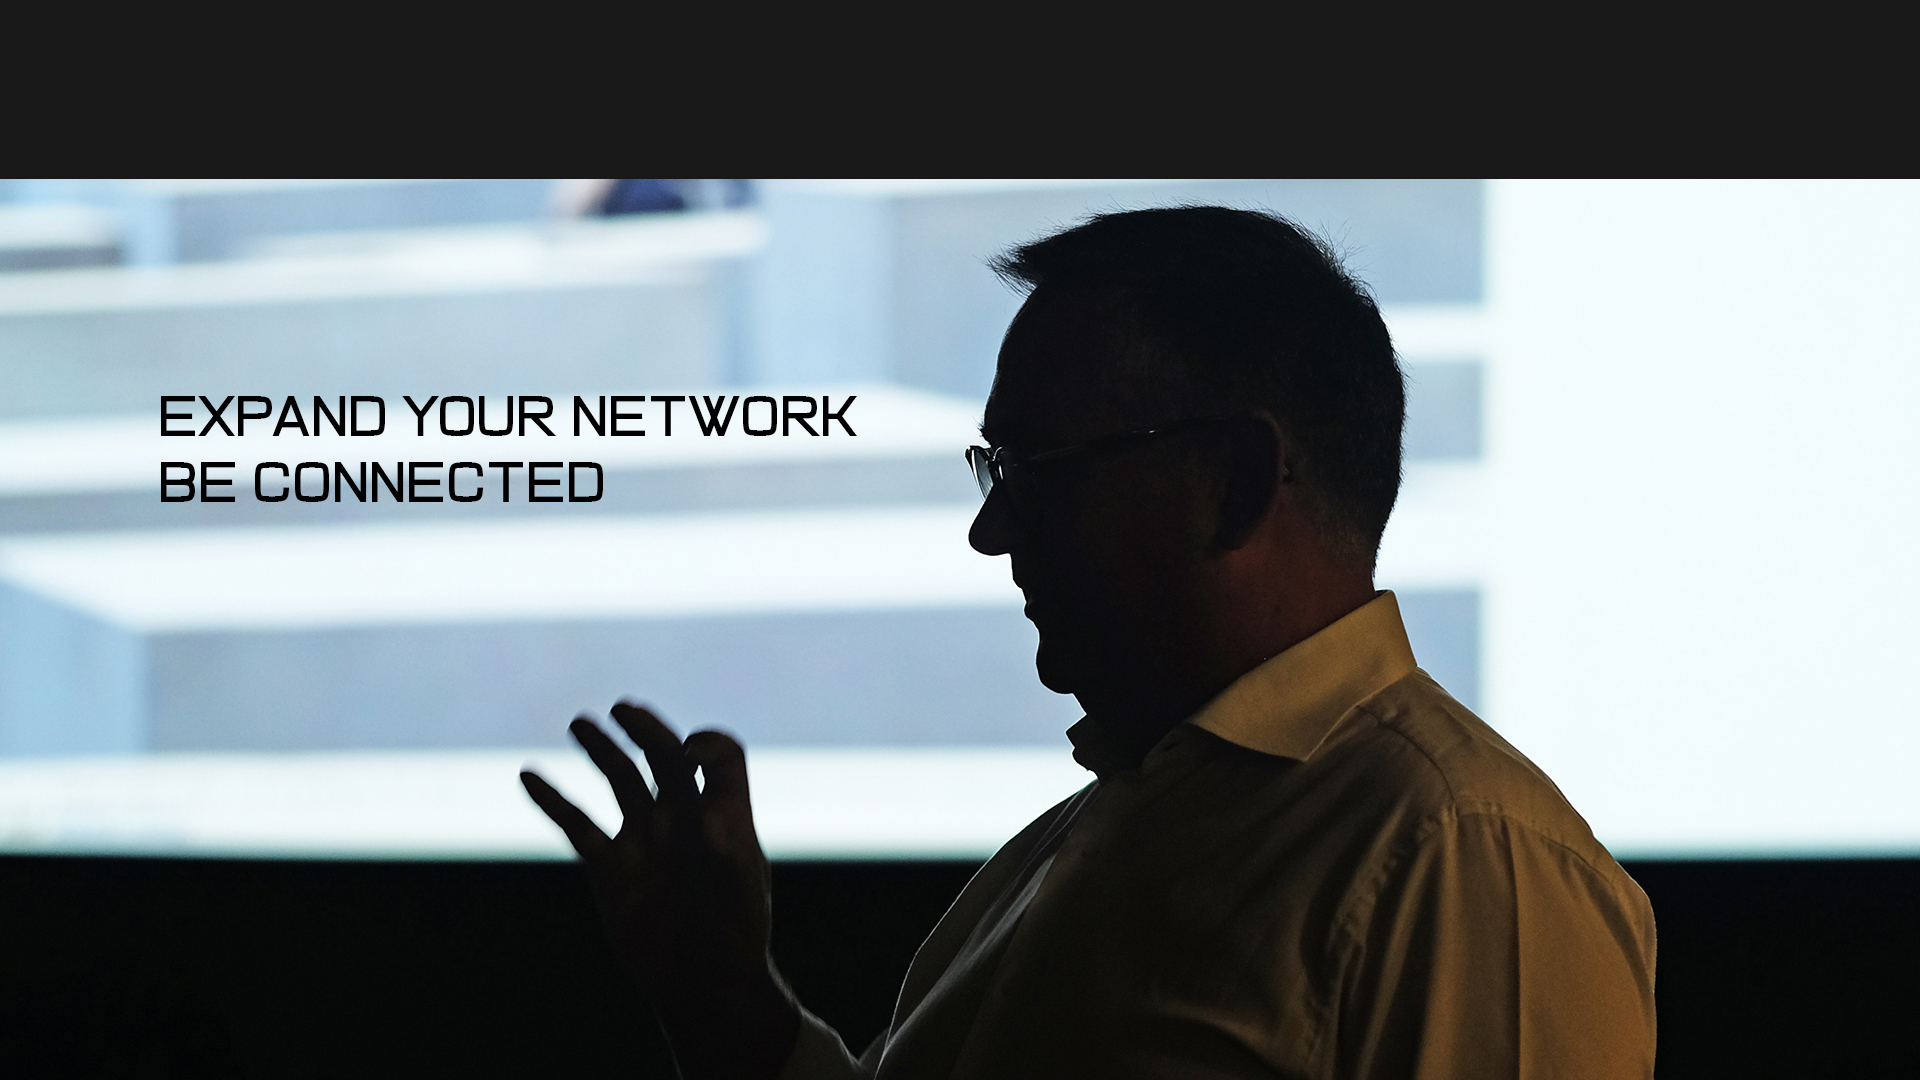 Expand your network. Be connected. Make the most of our services!